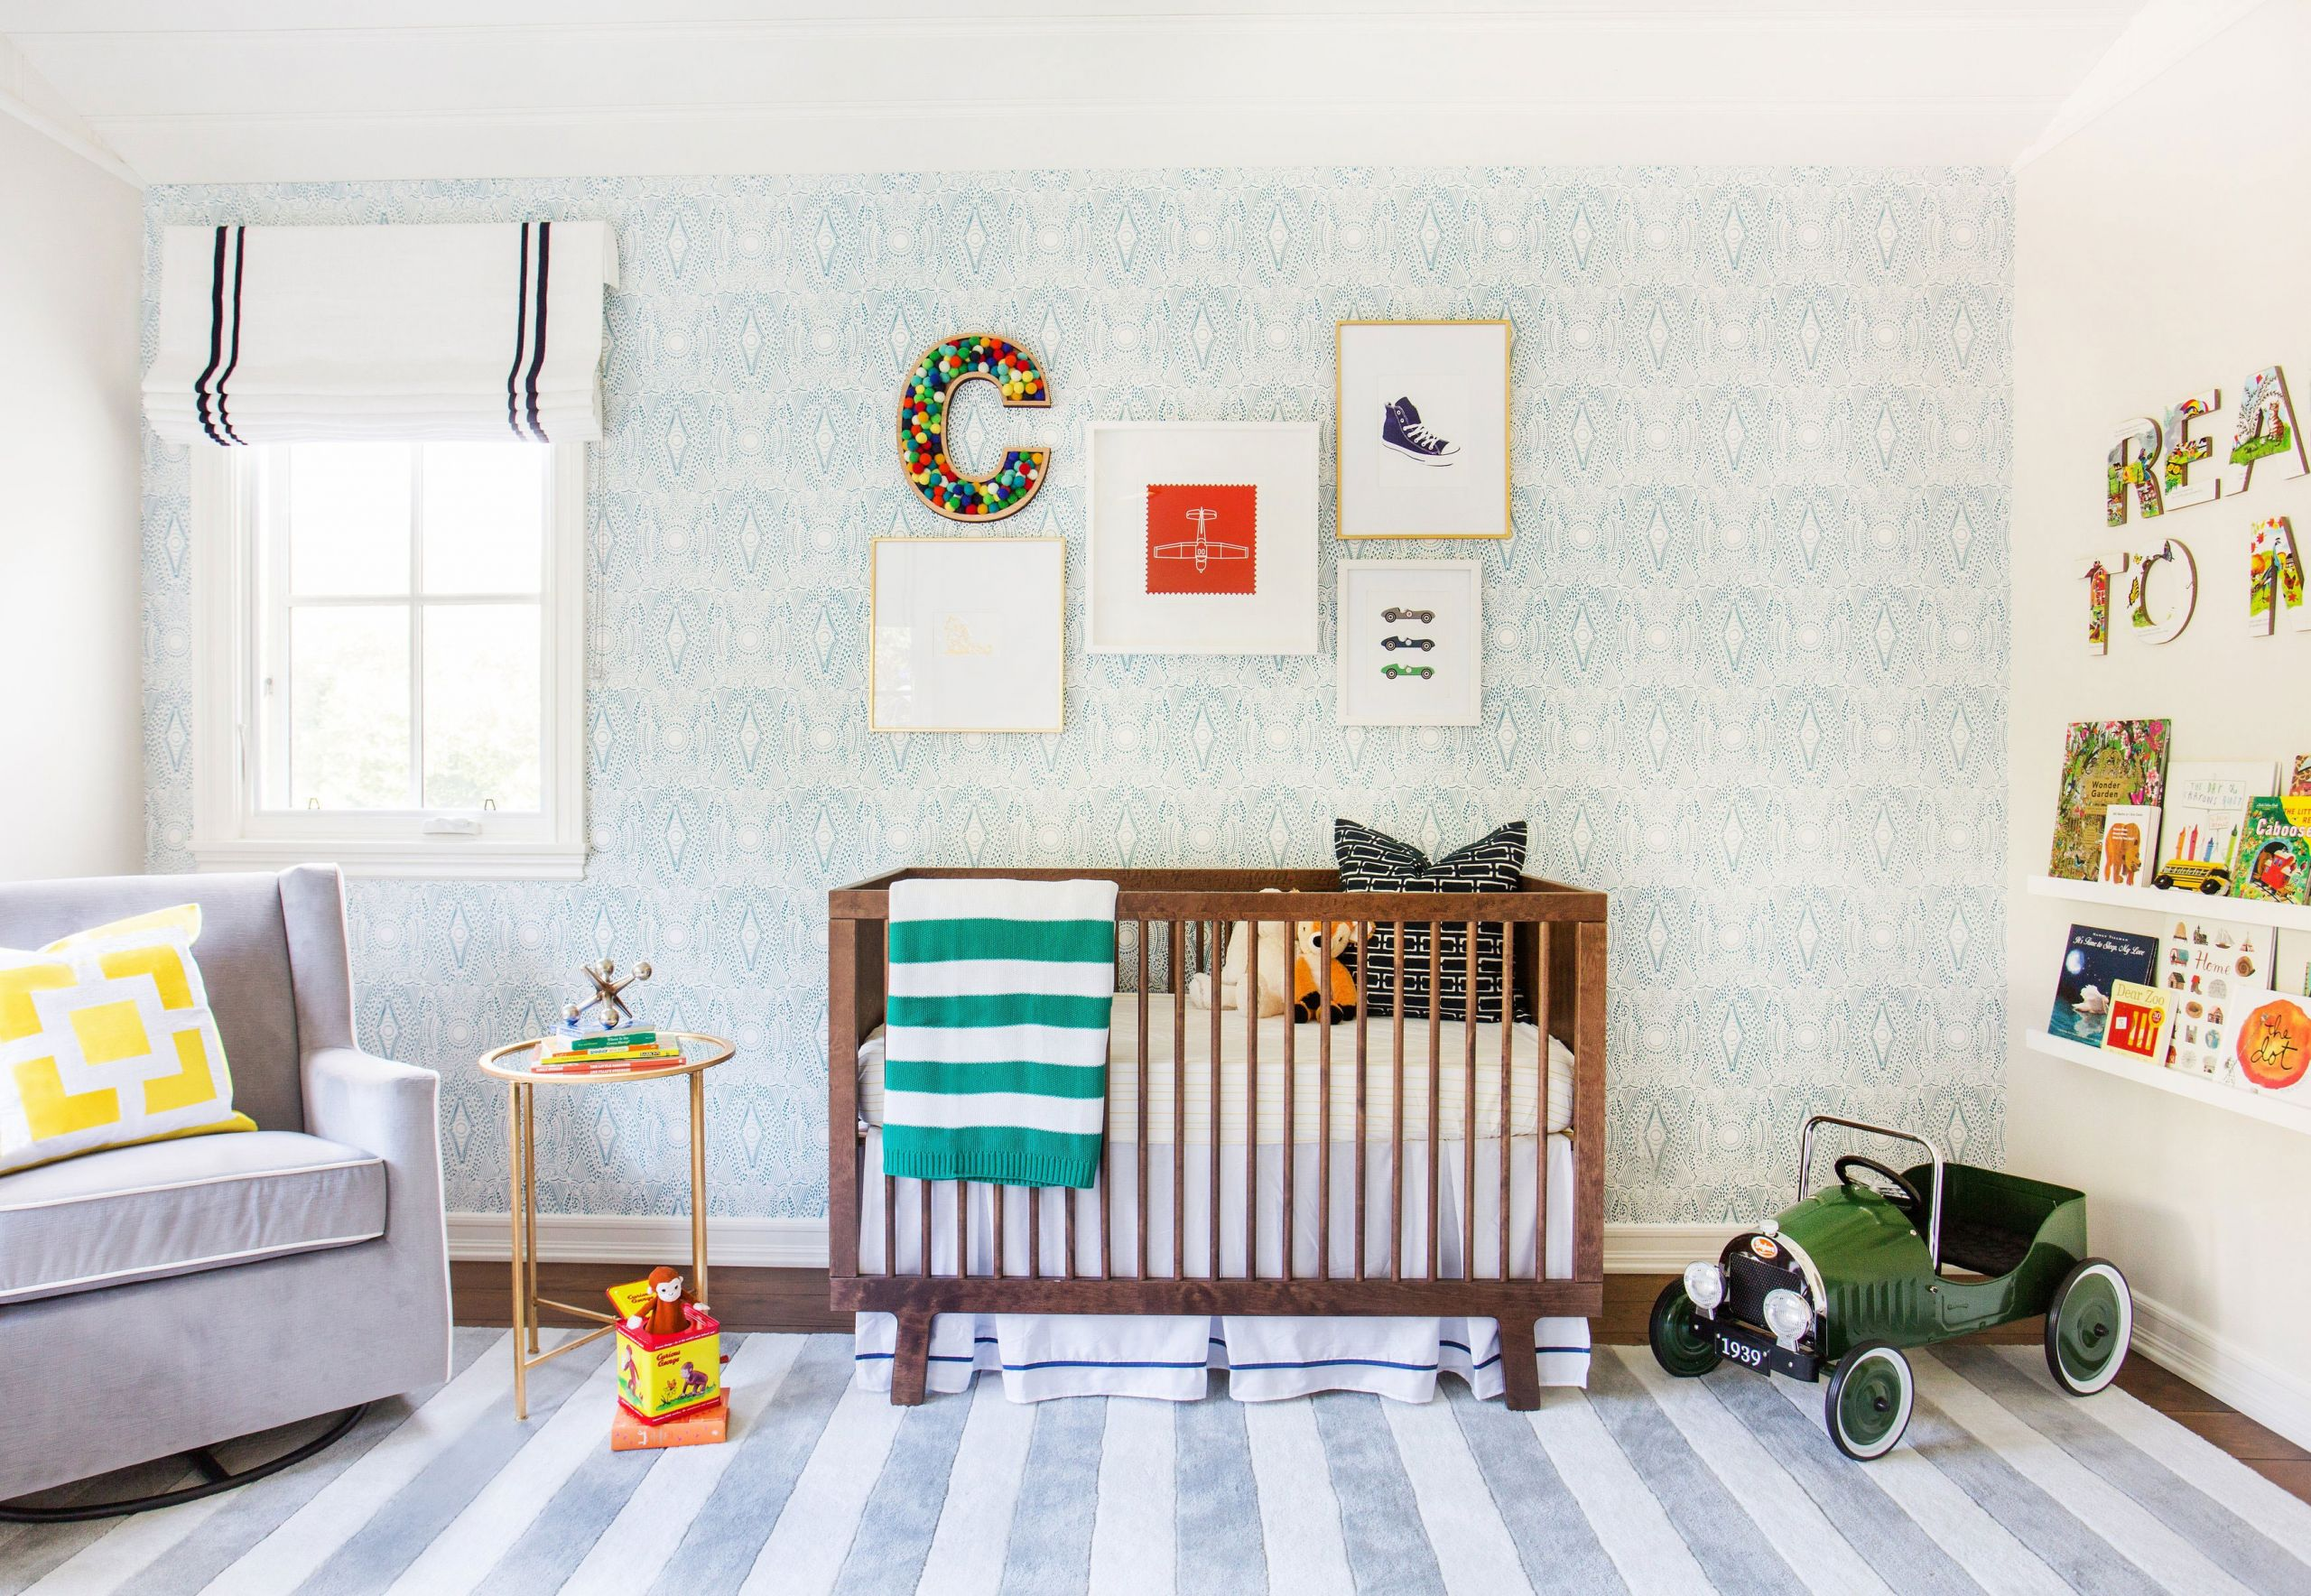 Baby Room Wall Decorating Ideas  3 Wall Decor Ideas Perfect for Kids' Rooms s